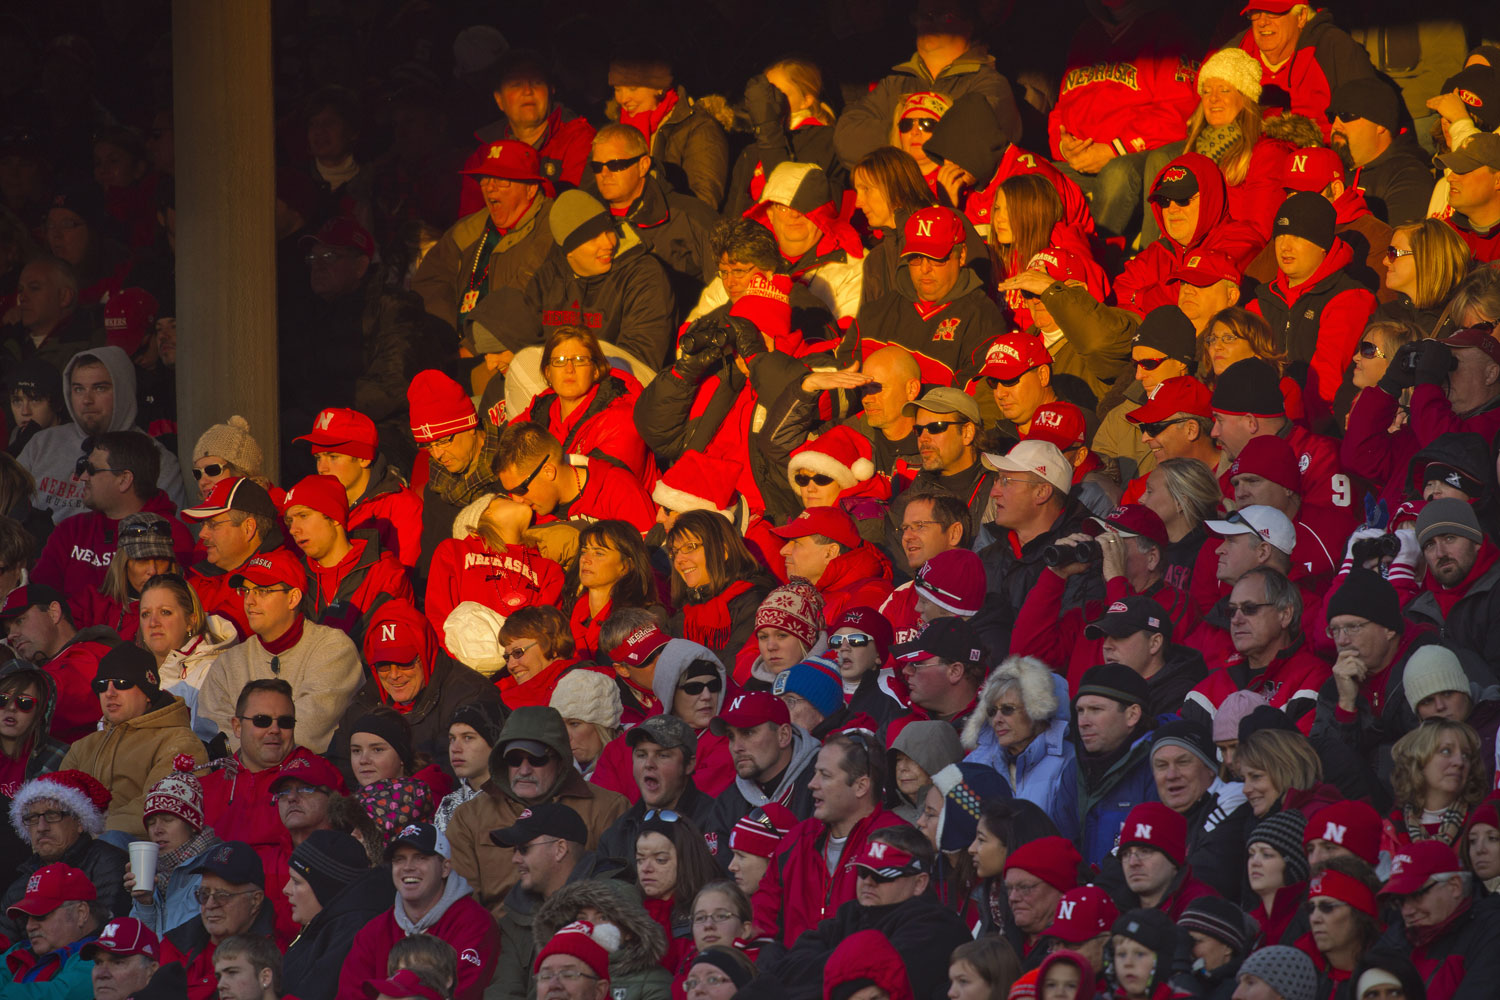 A couple share a kiss as the light fades at Memorial Stadium during a November 2010 game in Lincoln, Nebraska.